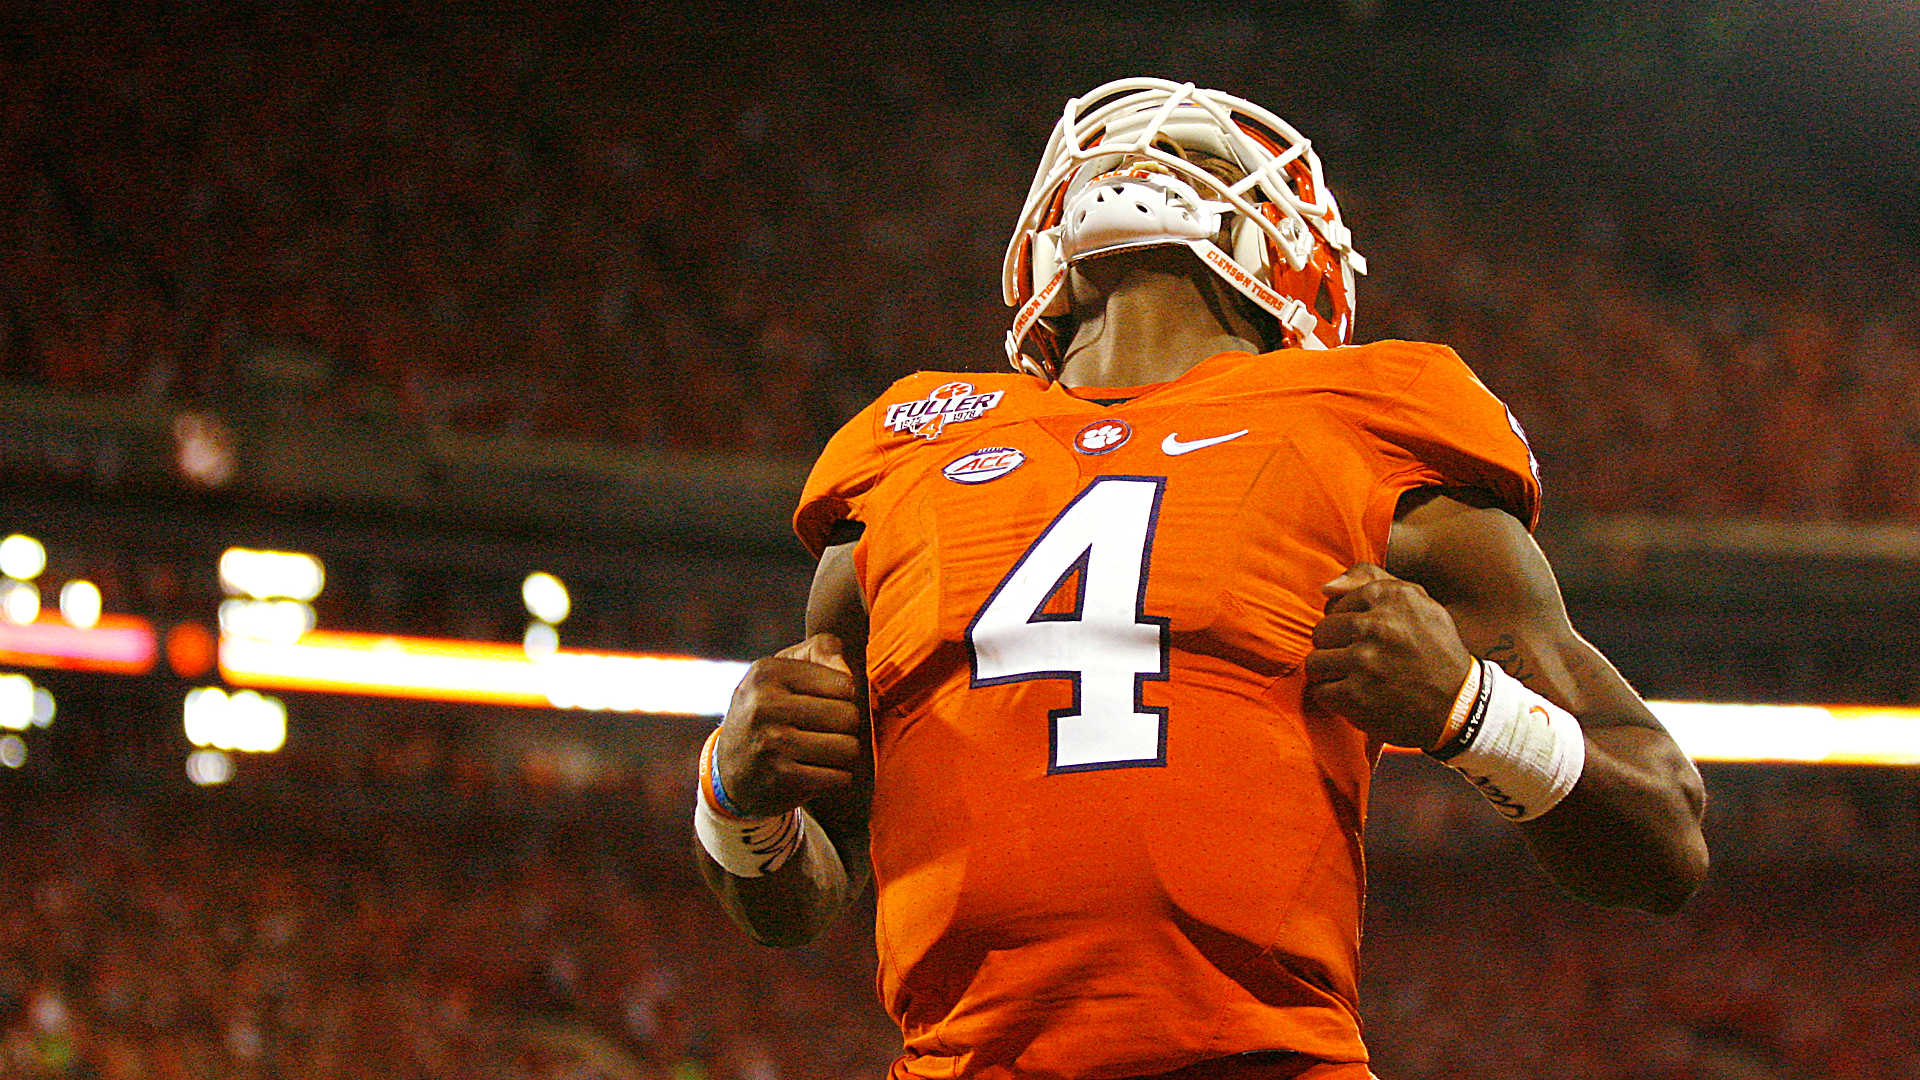 Deshaun watson shows nation he s still here while out dueling lamar